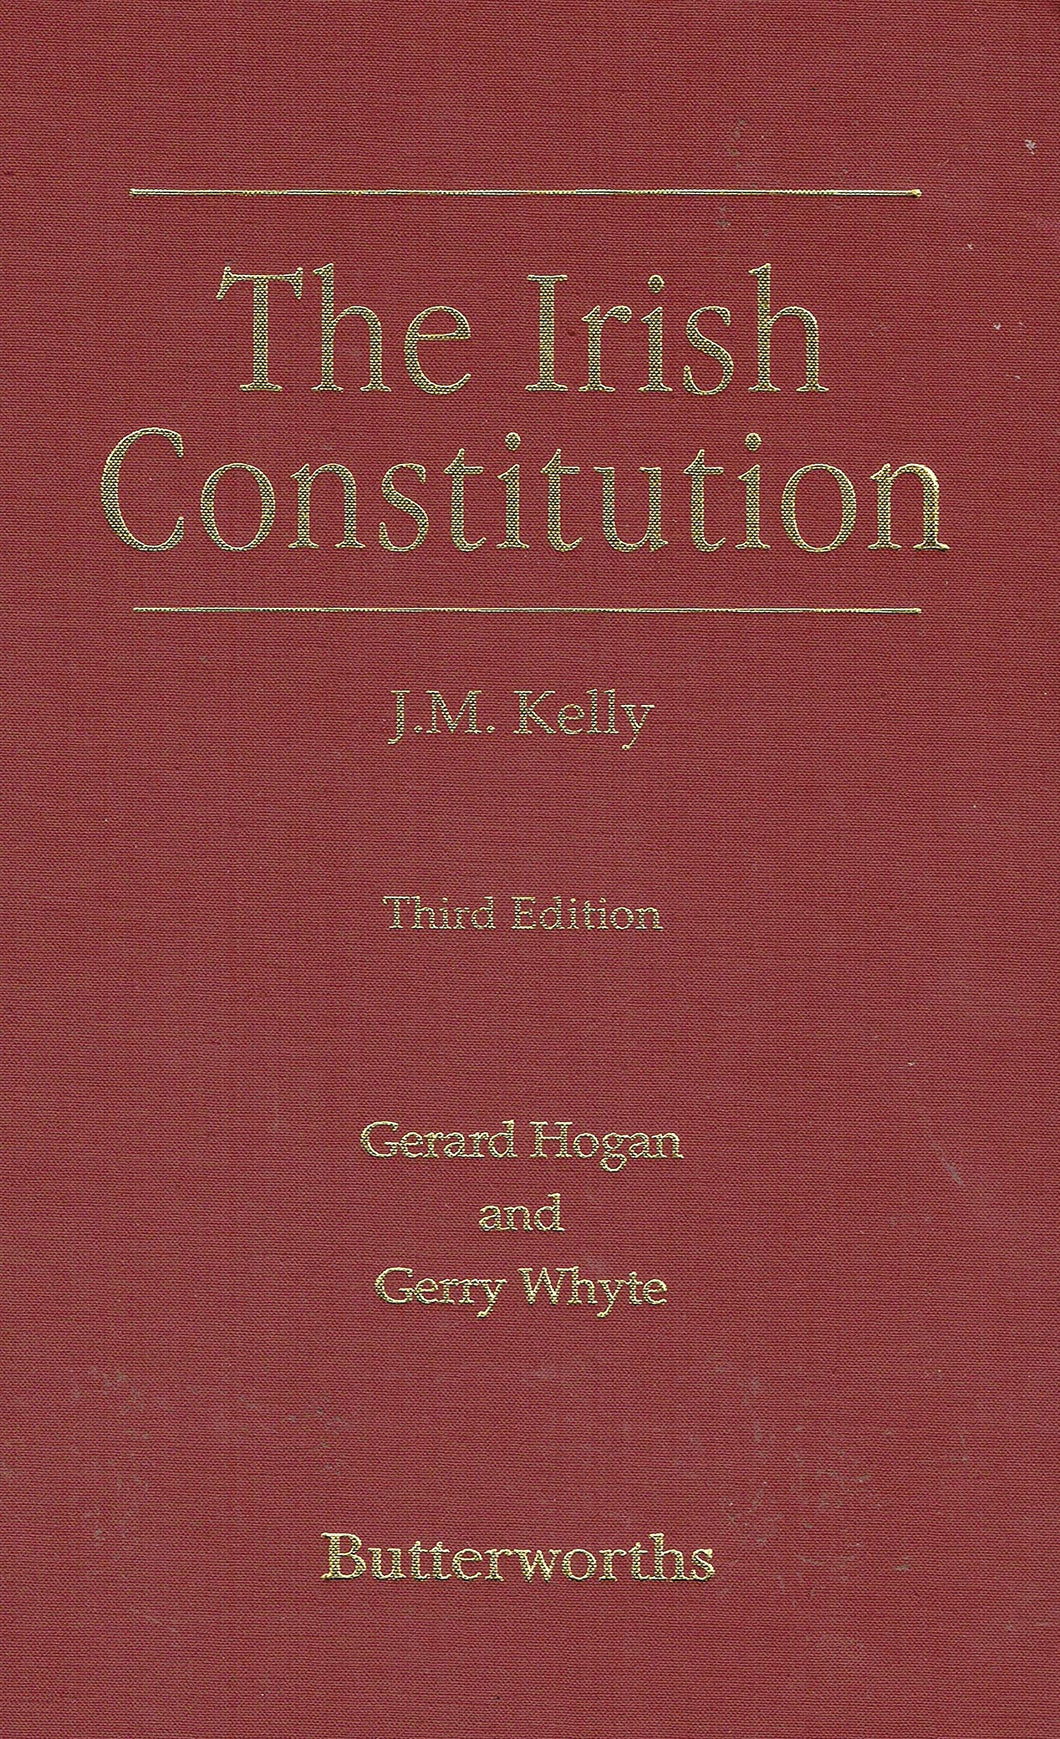 The Irish Constitution (J.M Kelly)